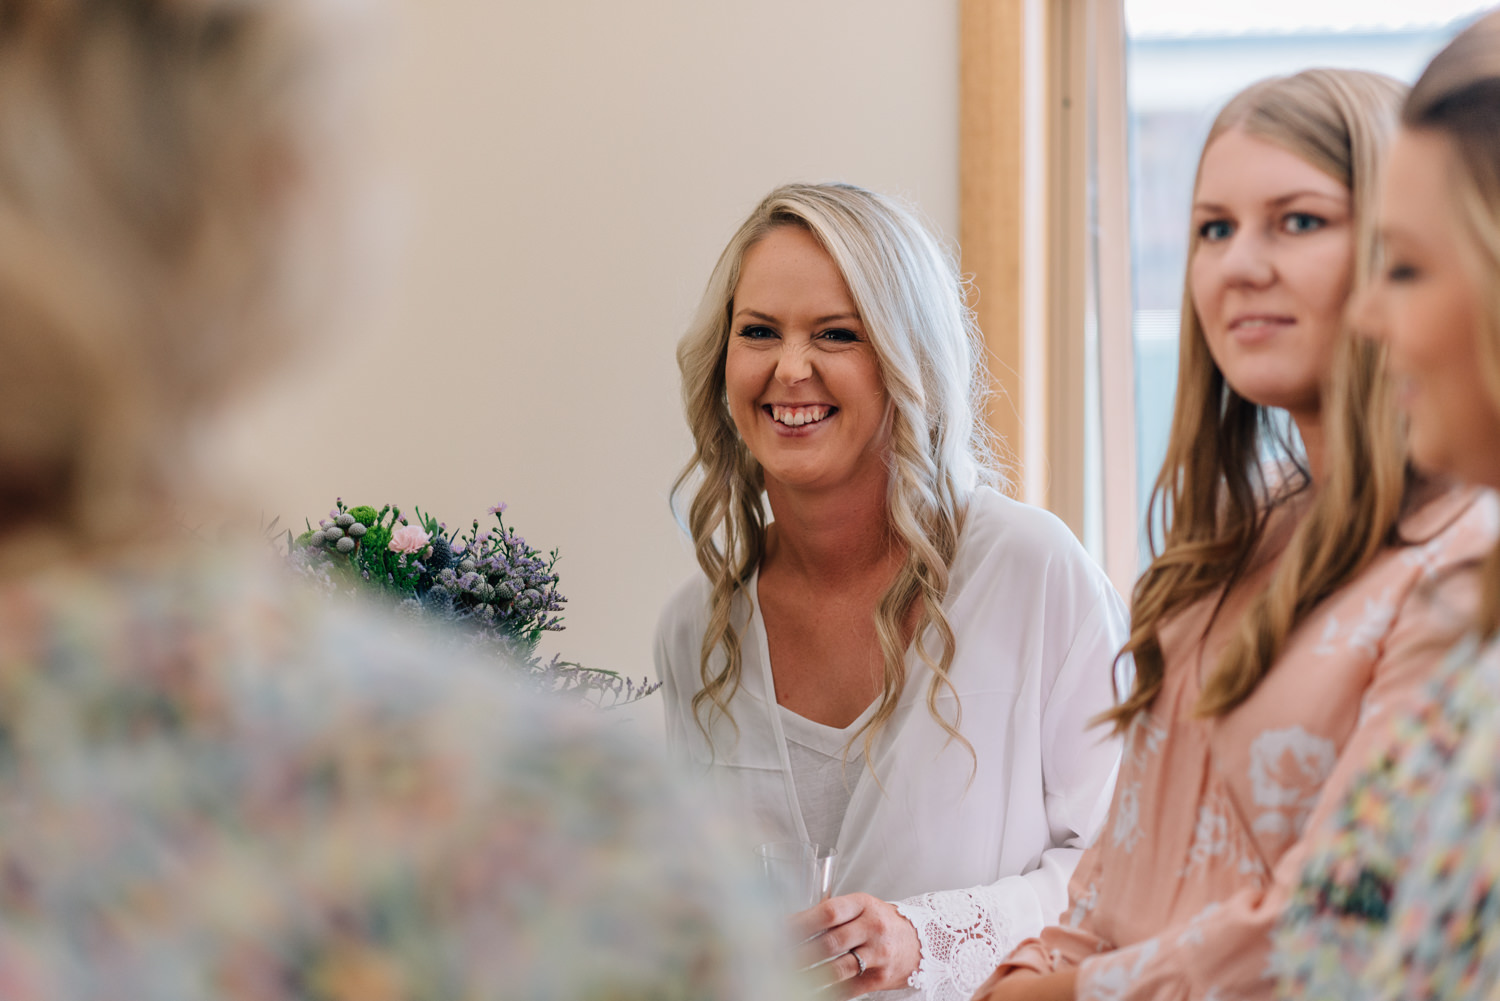 Launceston-Wedding-Photographer-5.jpg